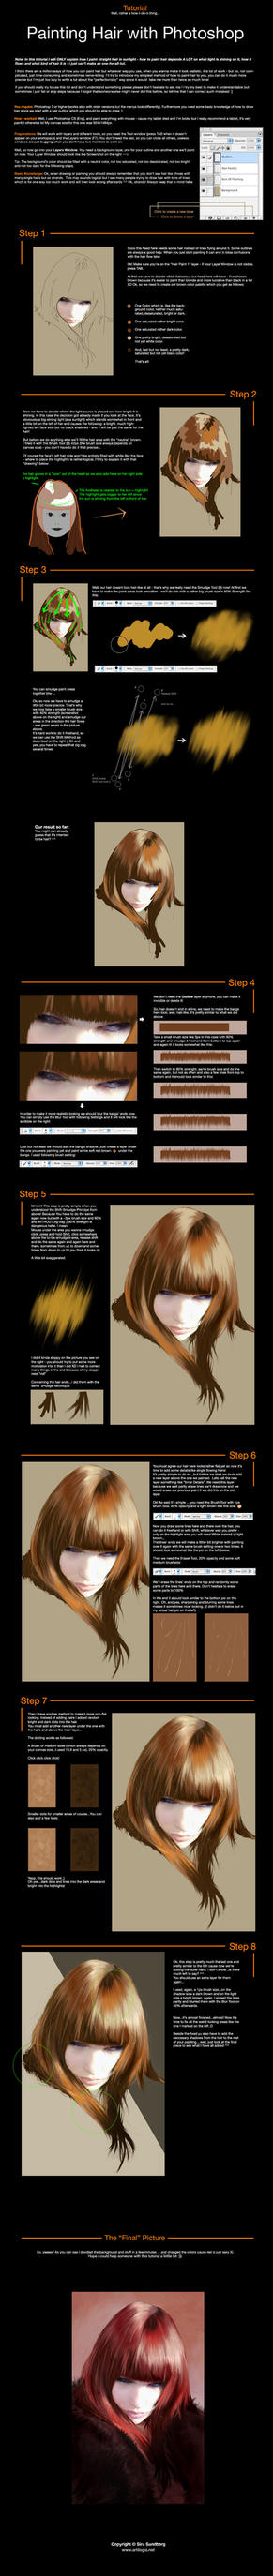 Photoshop - Painting Hair by sirasan